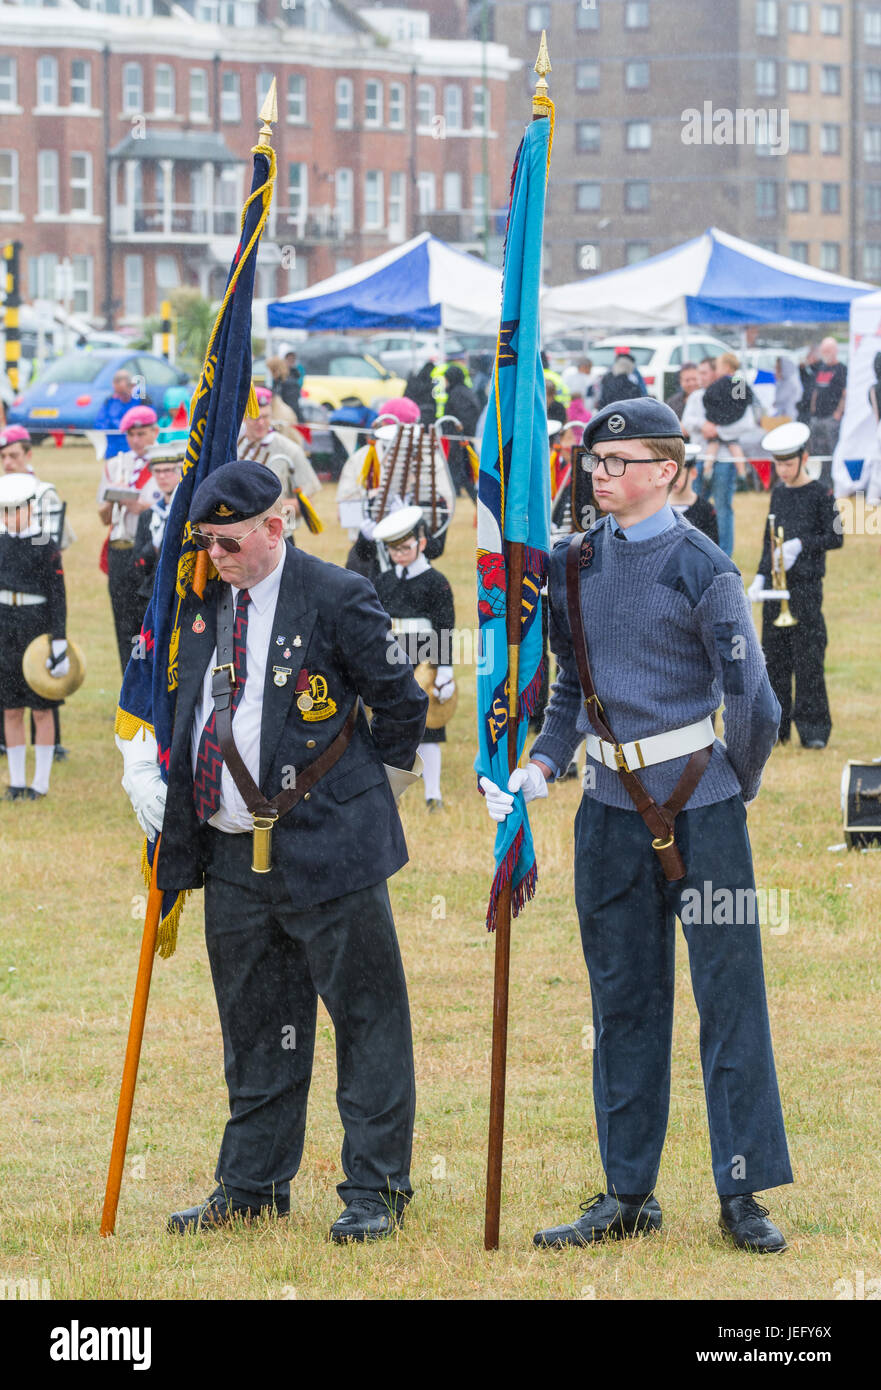 Young and old military men standing at an outdoor service on the June 2017 Armed Forces day in Littlehampton, UK. - Stock Image